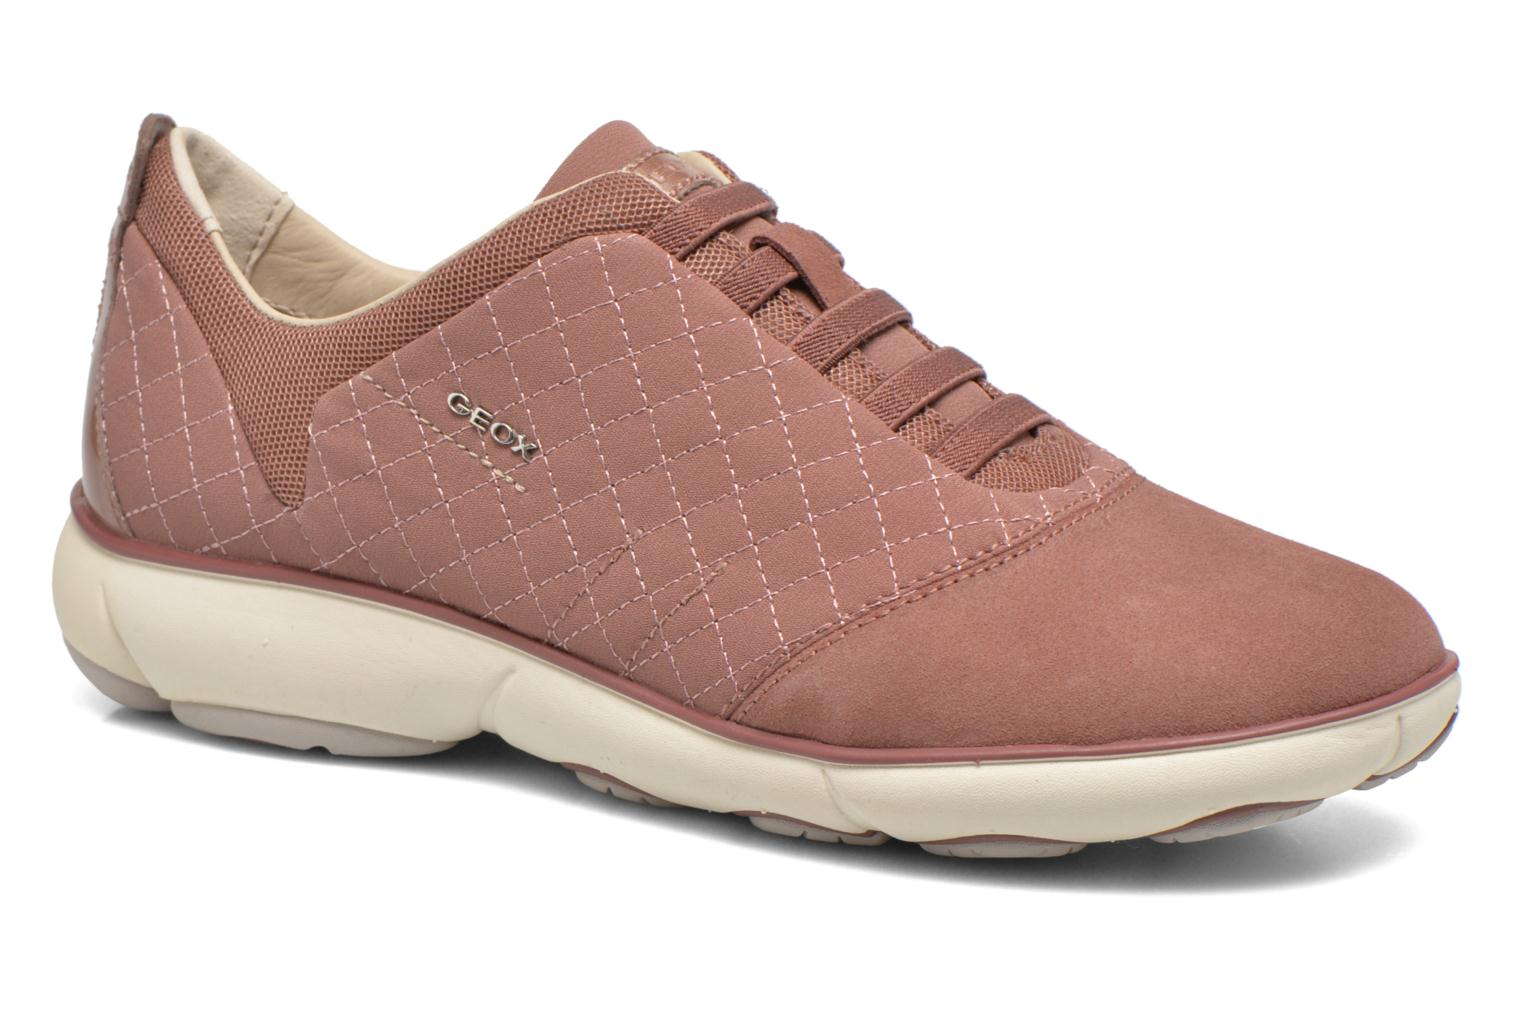 Donna Geox D Nebula A D641ea Sneakers Rosa